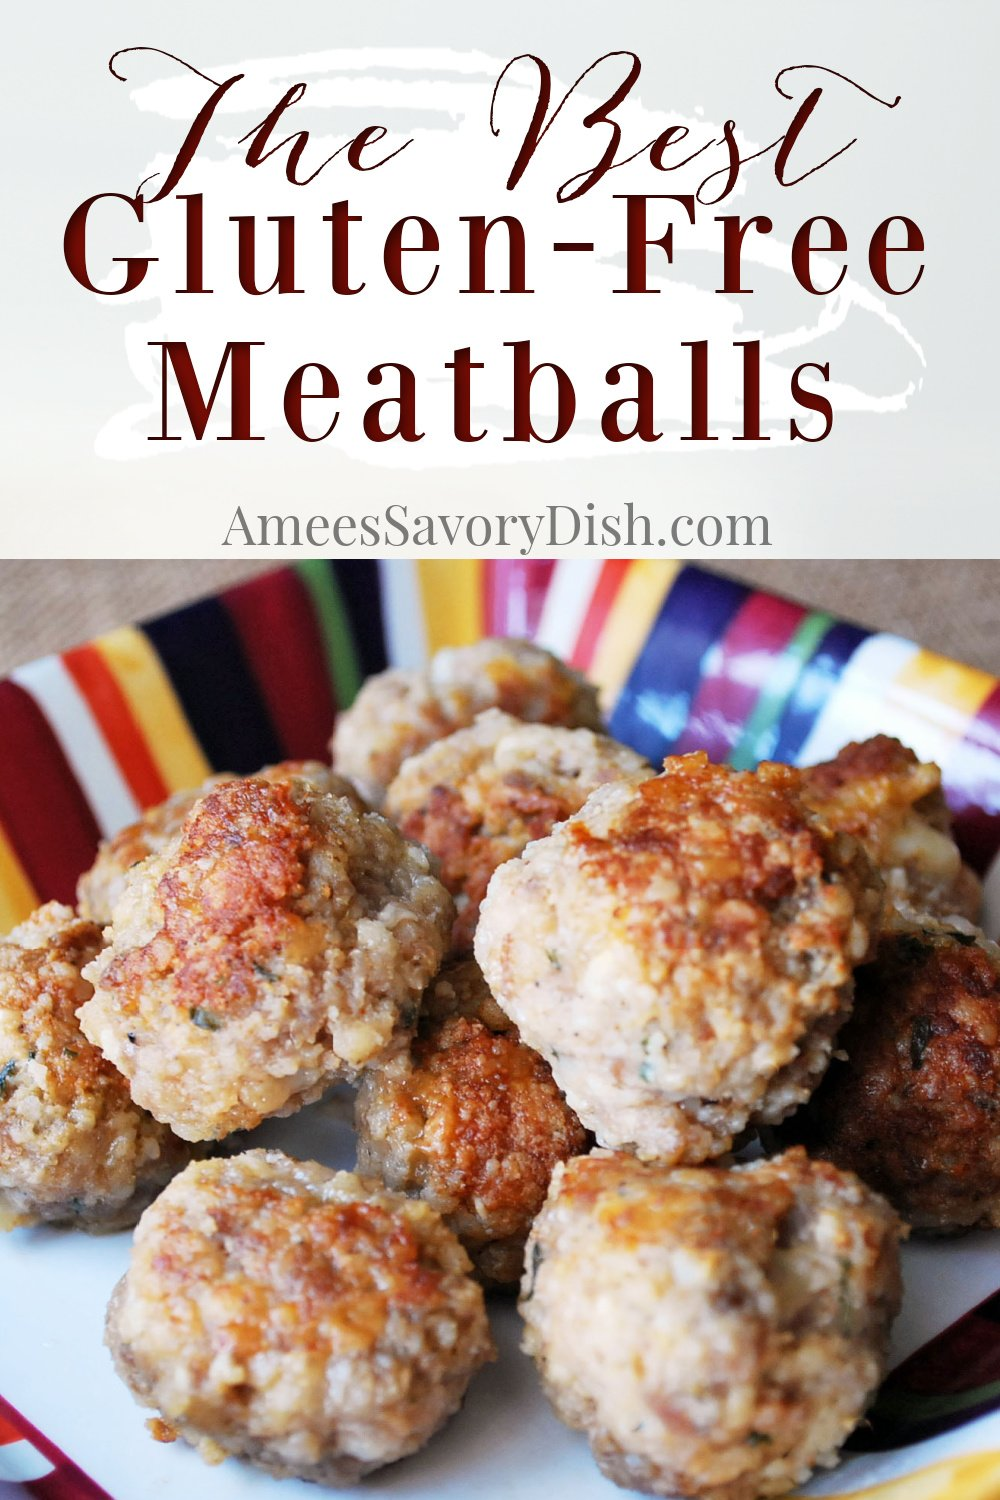 A simple and delicious recipe for Italian meatballs made with a mixture of lean grass-fed beef, ground pork, and mild Italian sausage. #glutenfreemeatballs #meatballs #beefrecipe #glutenfreeItalian #Italianfood via @Ameessavorydish